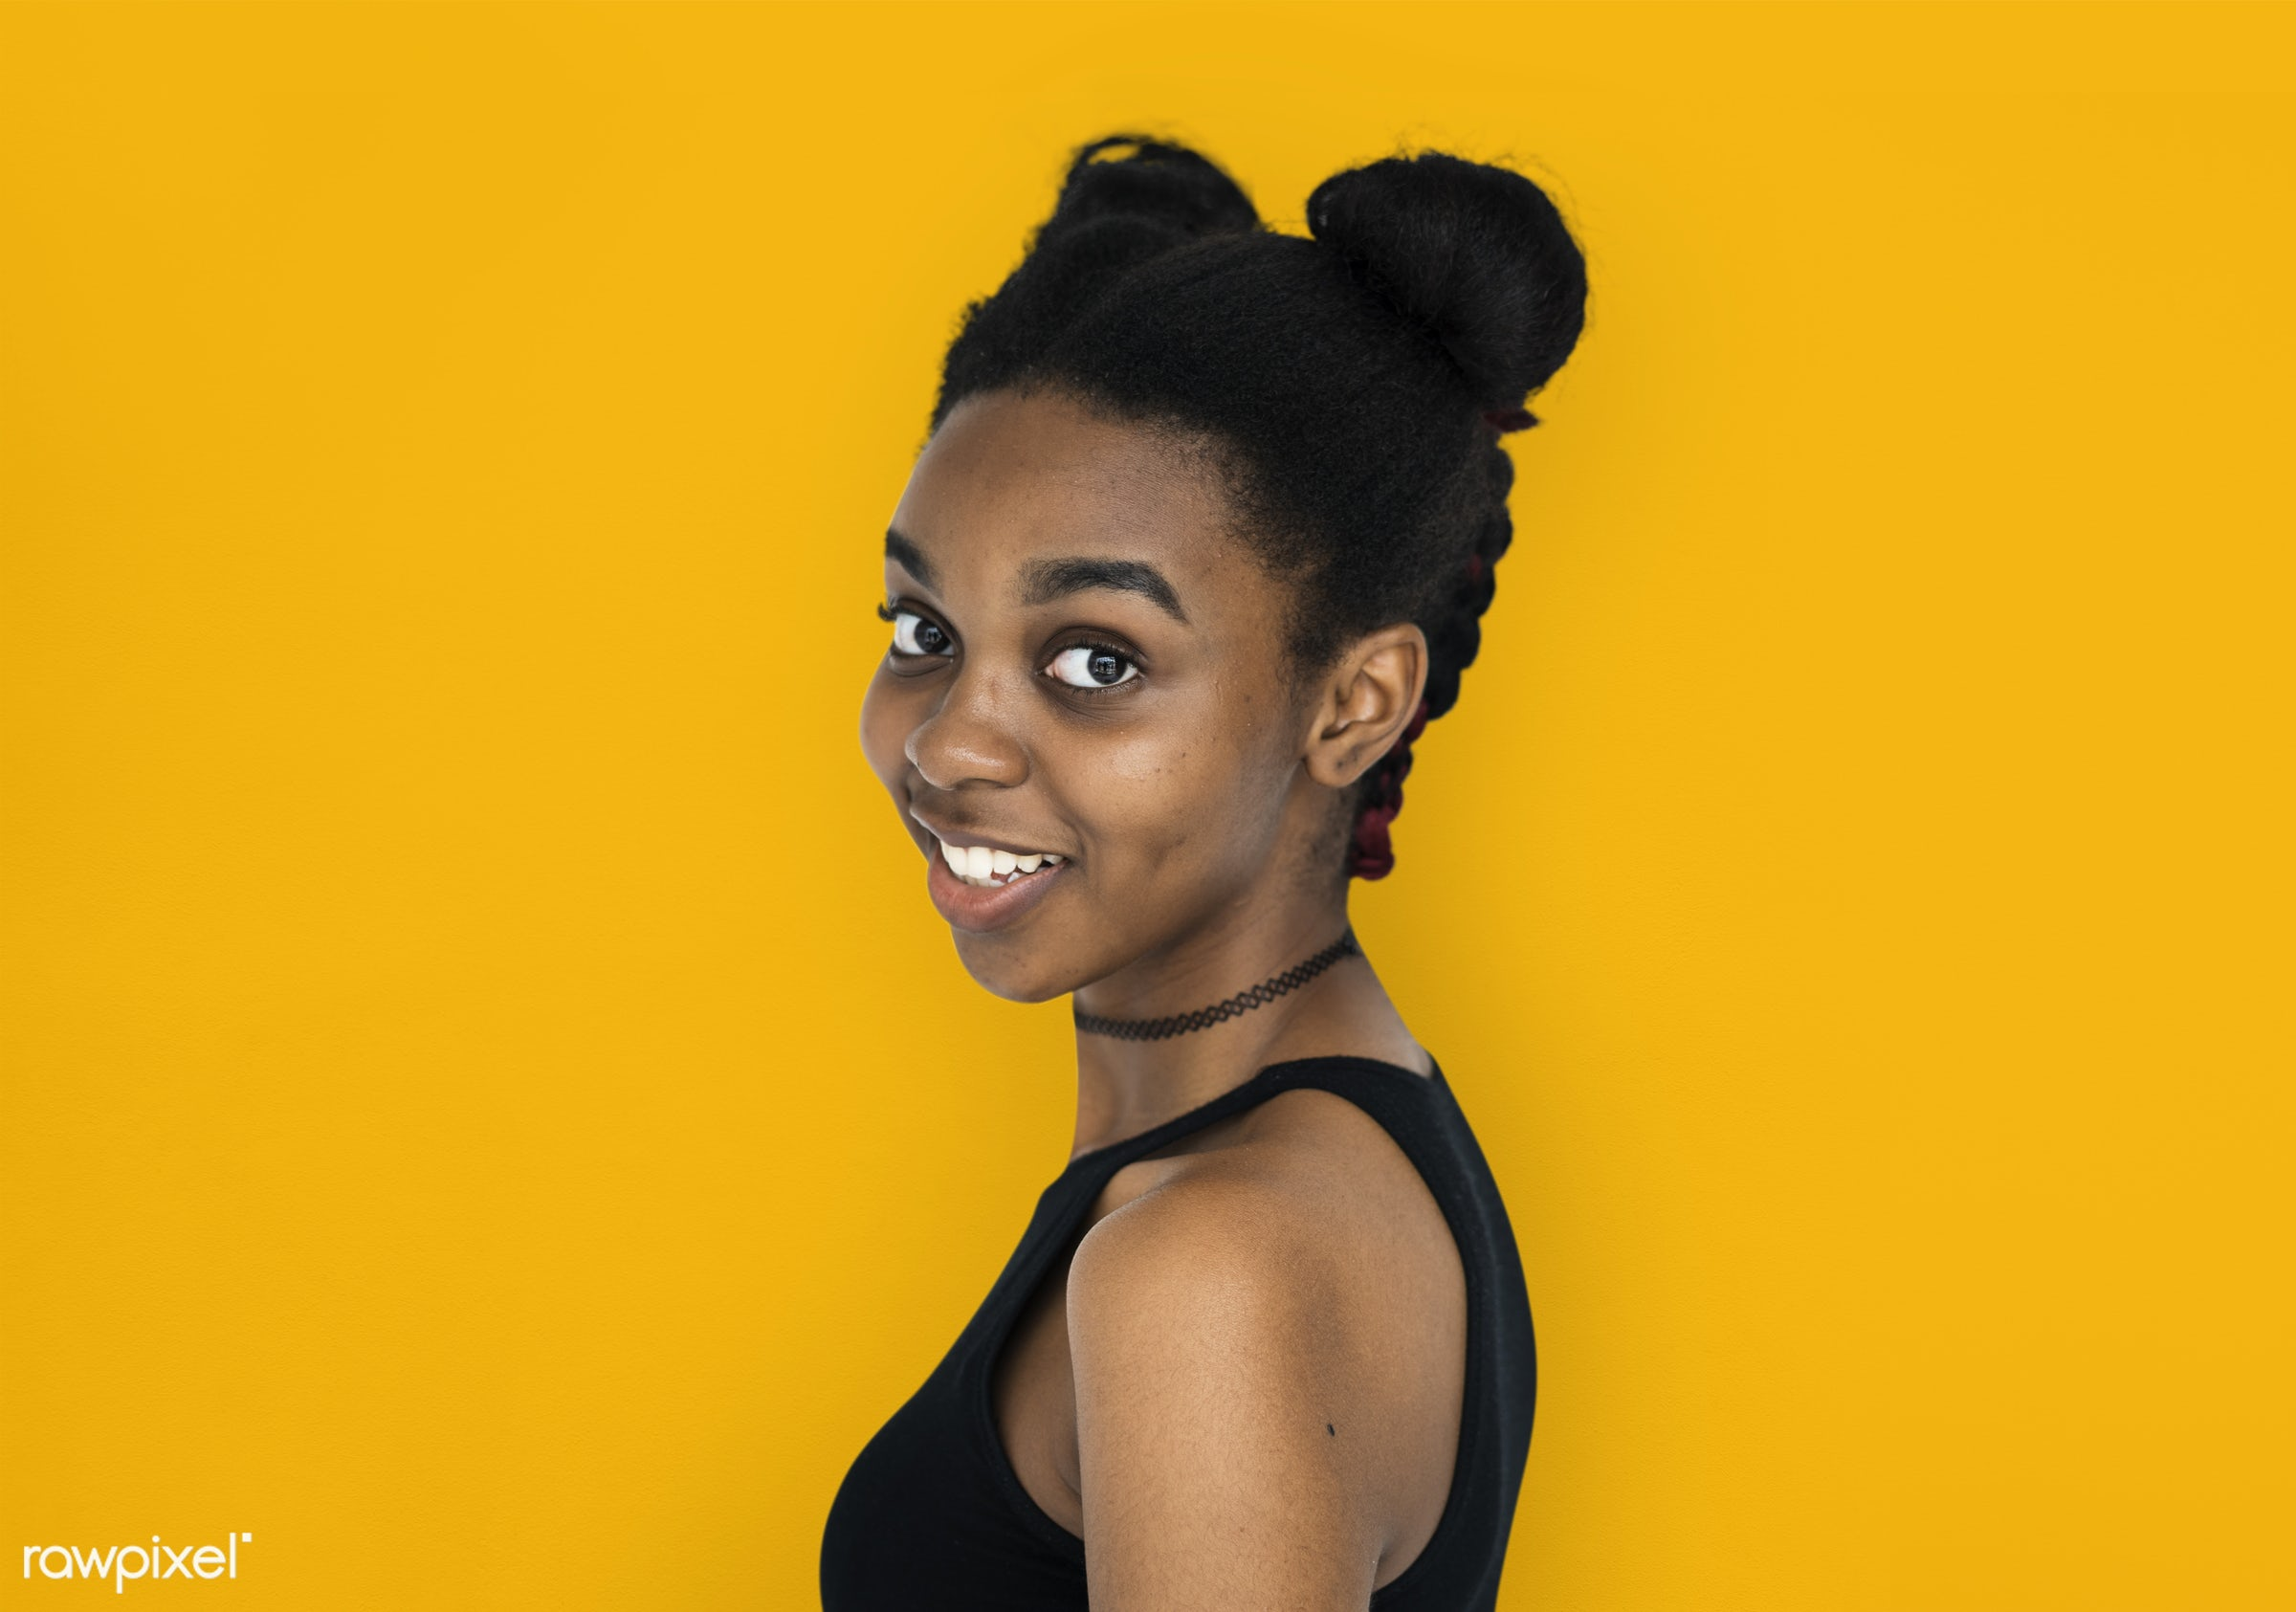 expression, studio, person, yellow, people, woman, smile, cheerful, smiling, orange, isolated, buns, african descent,...